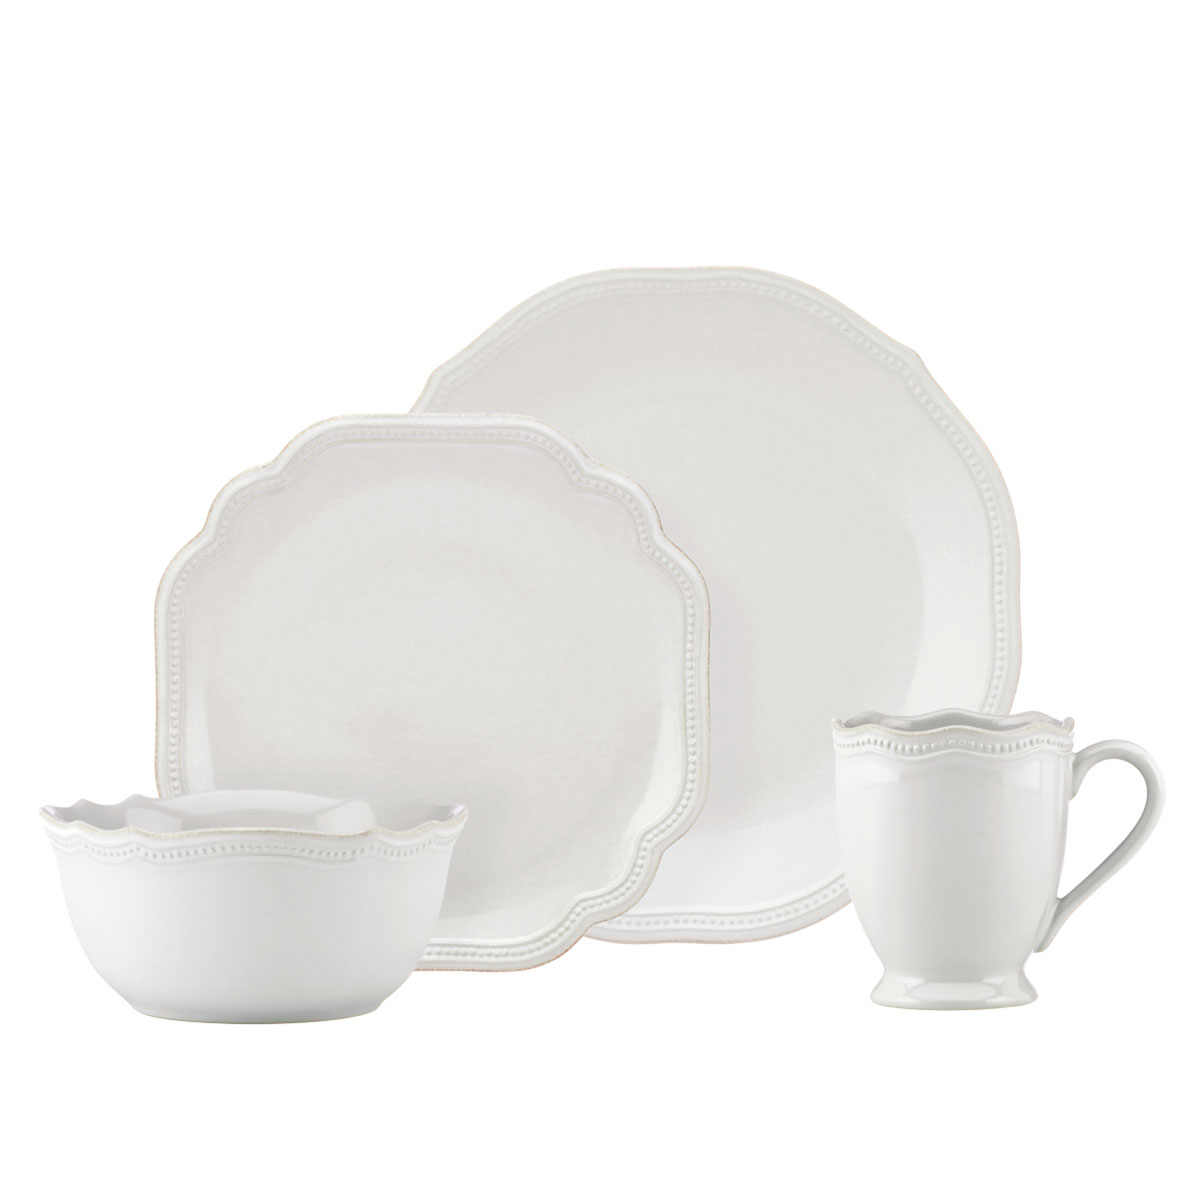 Lenox French Perle Bead White Dinnerware 4 Piece Place Setting